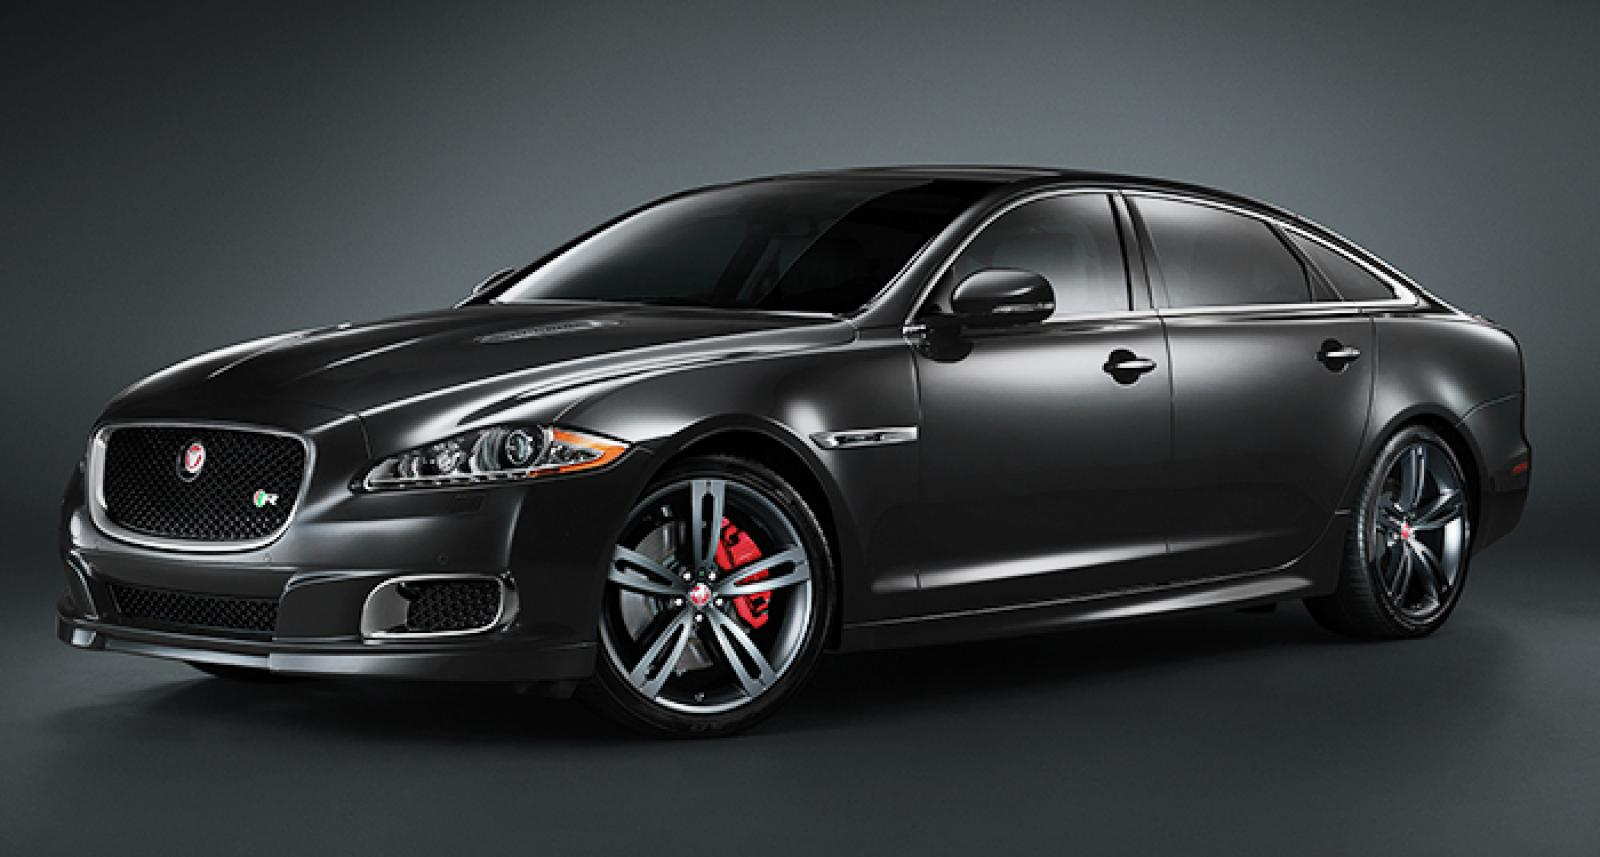 2015 jaguar xj information and photos zombiedrive. Black Bedroom Furniture Sets. Home Design Ideas